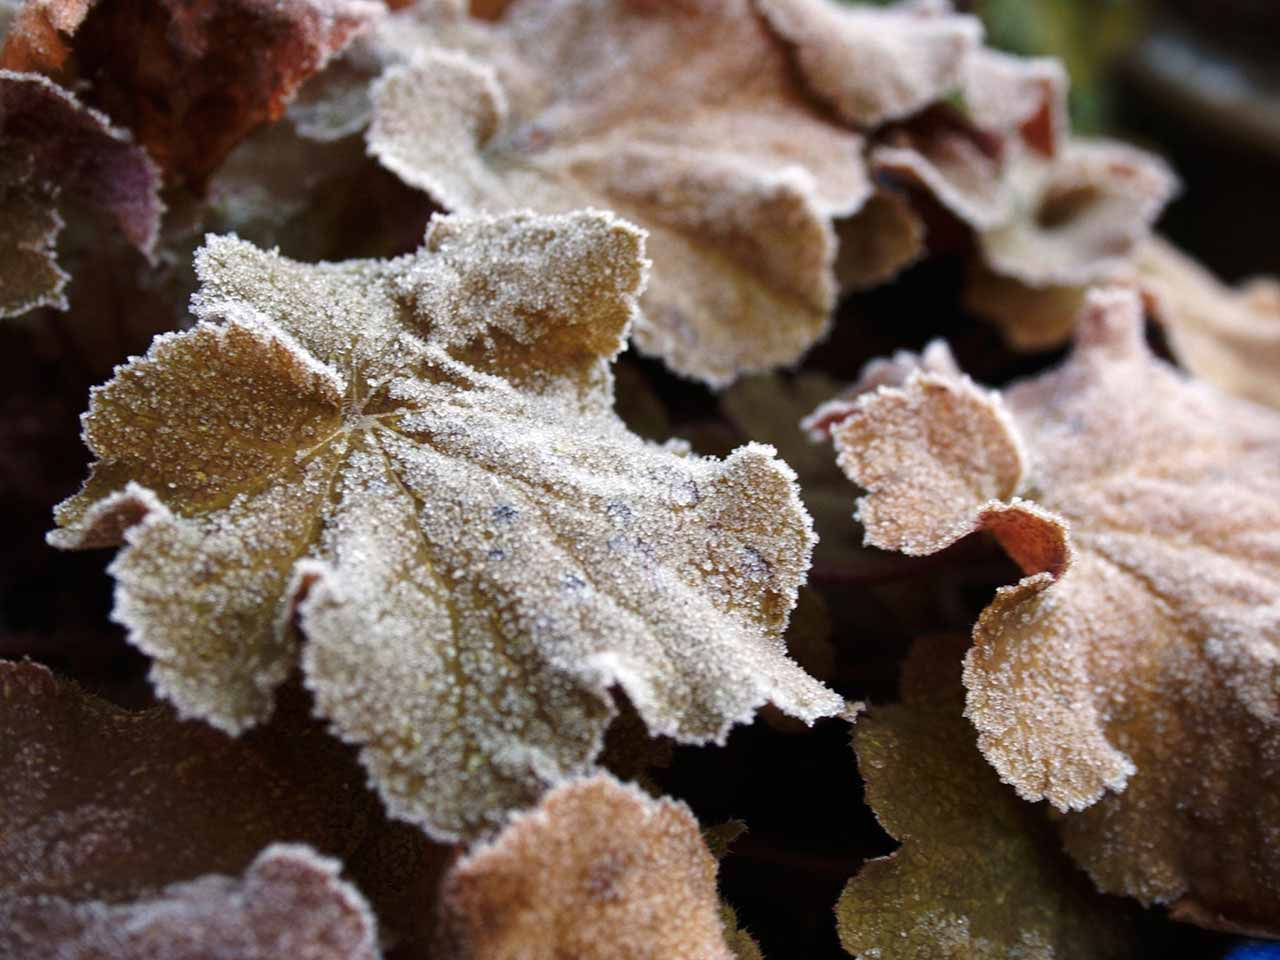 Heuchera plant with frosty leaves in the winter